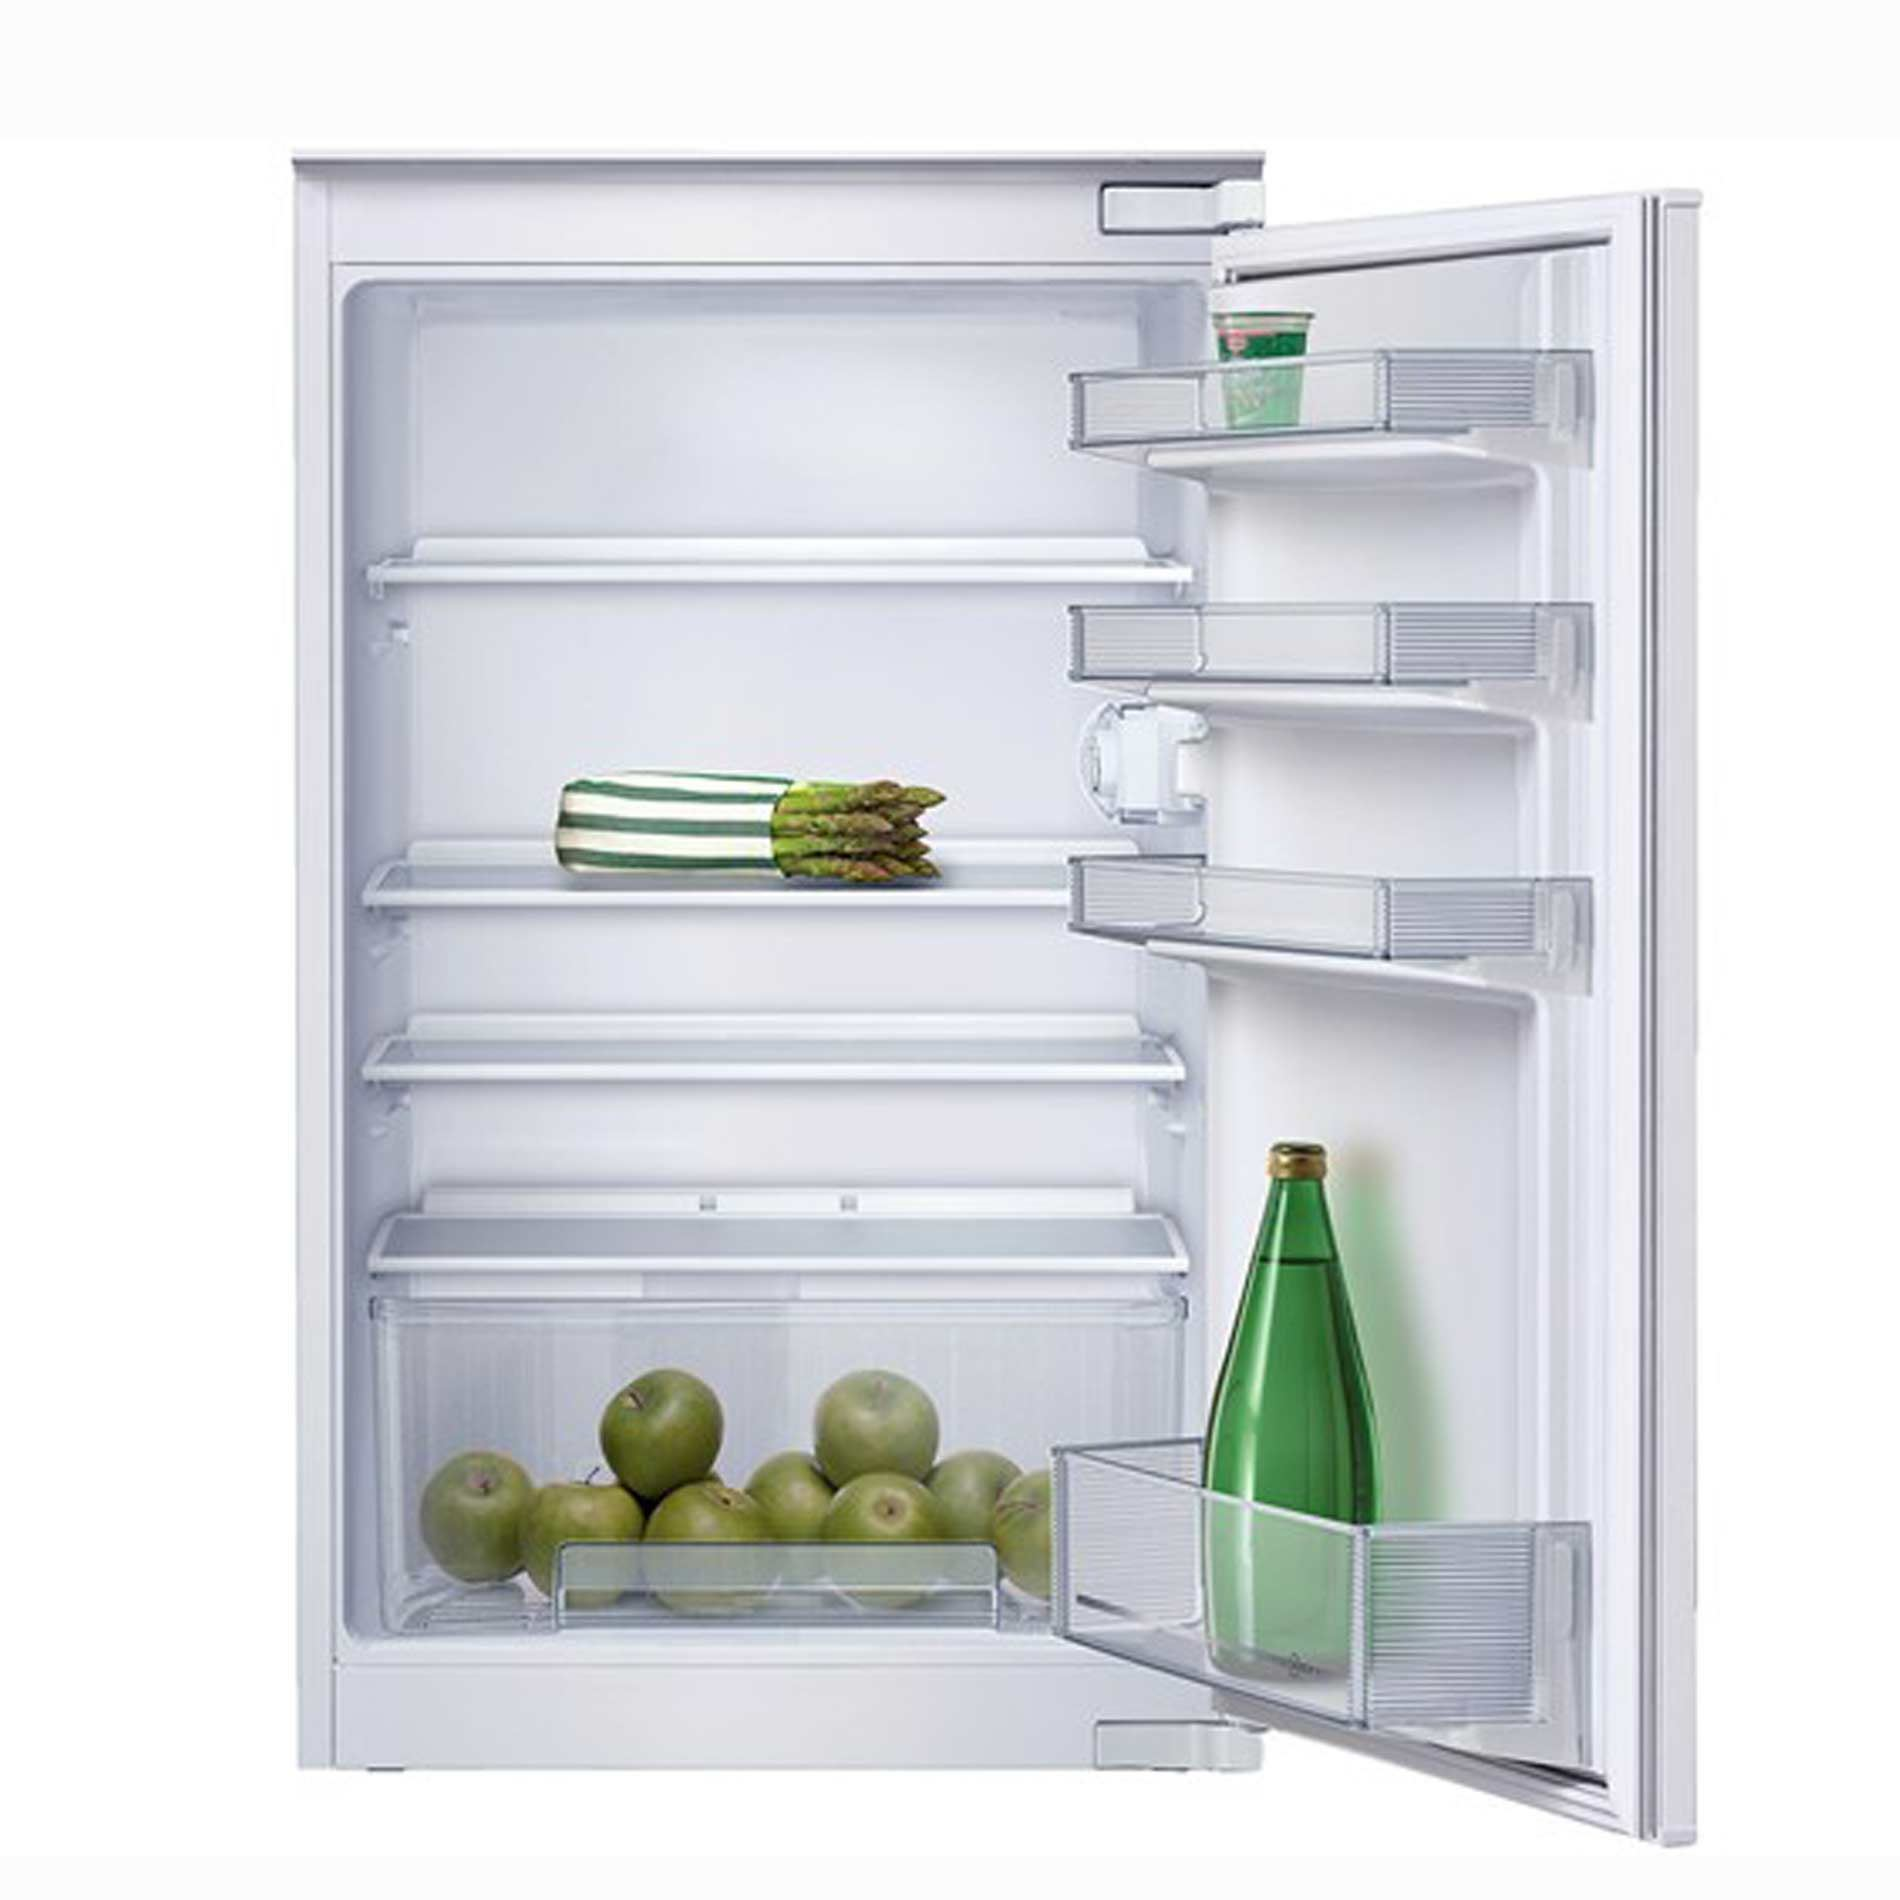 Picture of K1514X7GB Integrated Fridge - Collection Only